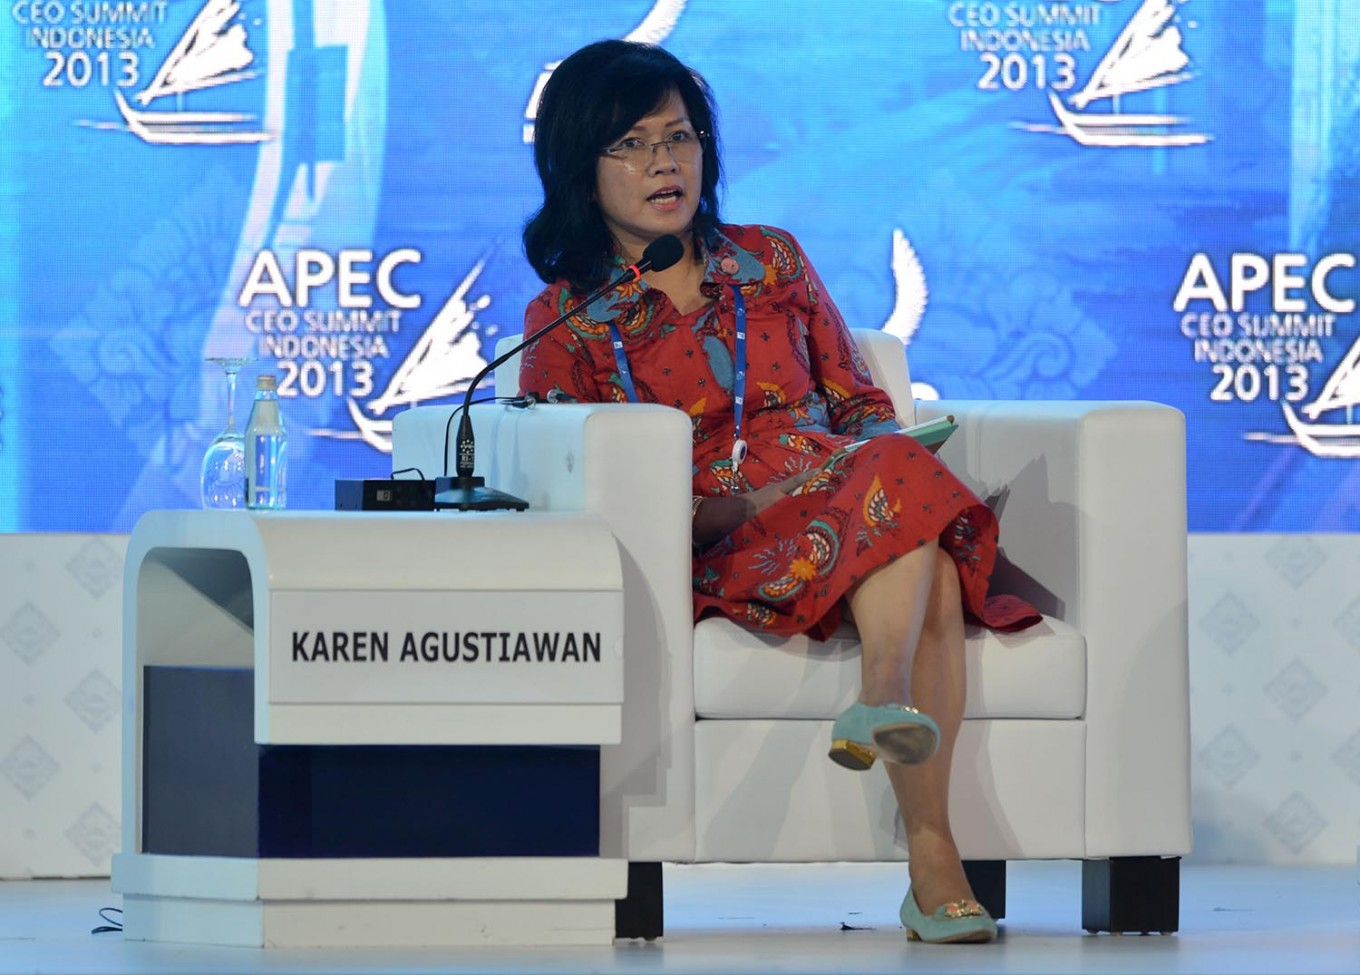 Ex-Pertamina director, Karen Agustiawan, named corruption suspect